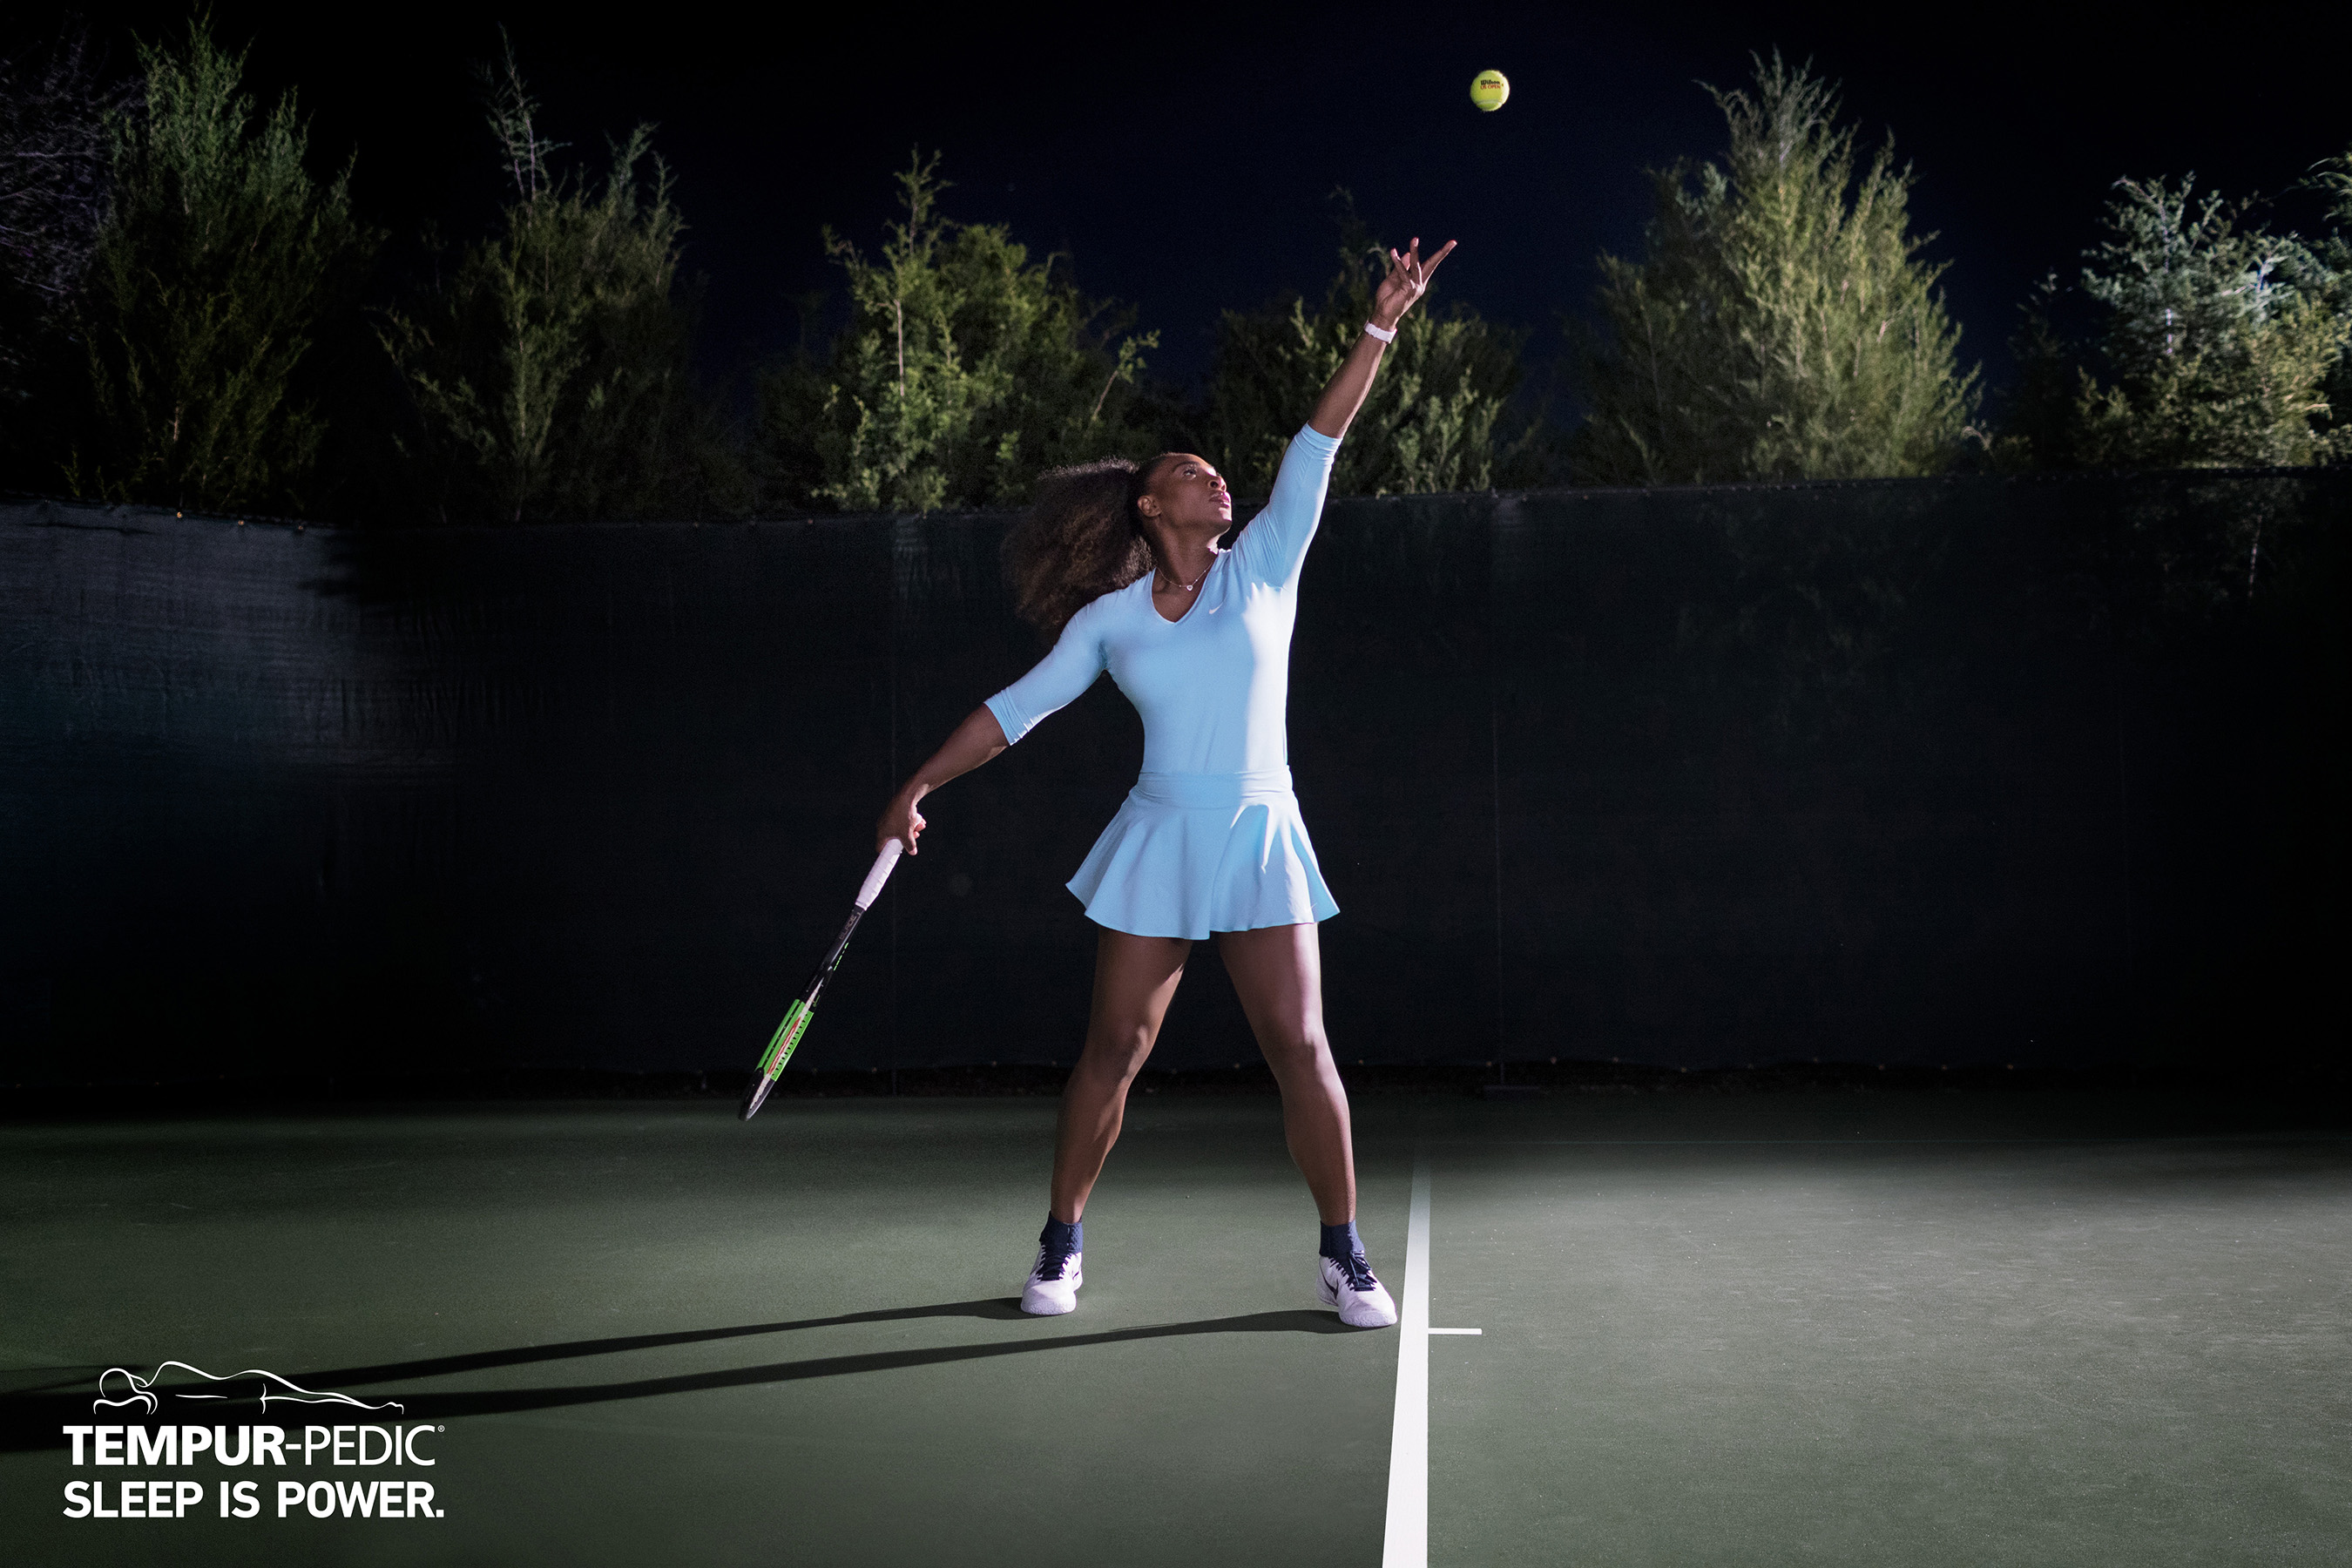 Tennis Icon Serena Williams is Powered by TempurPedic